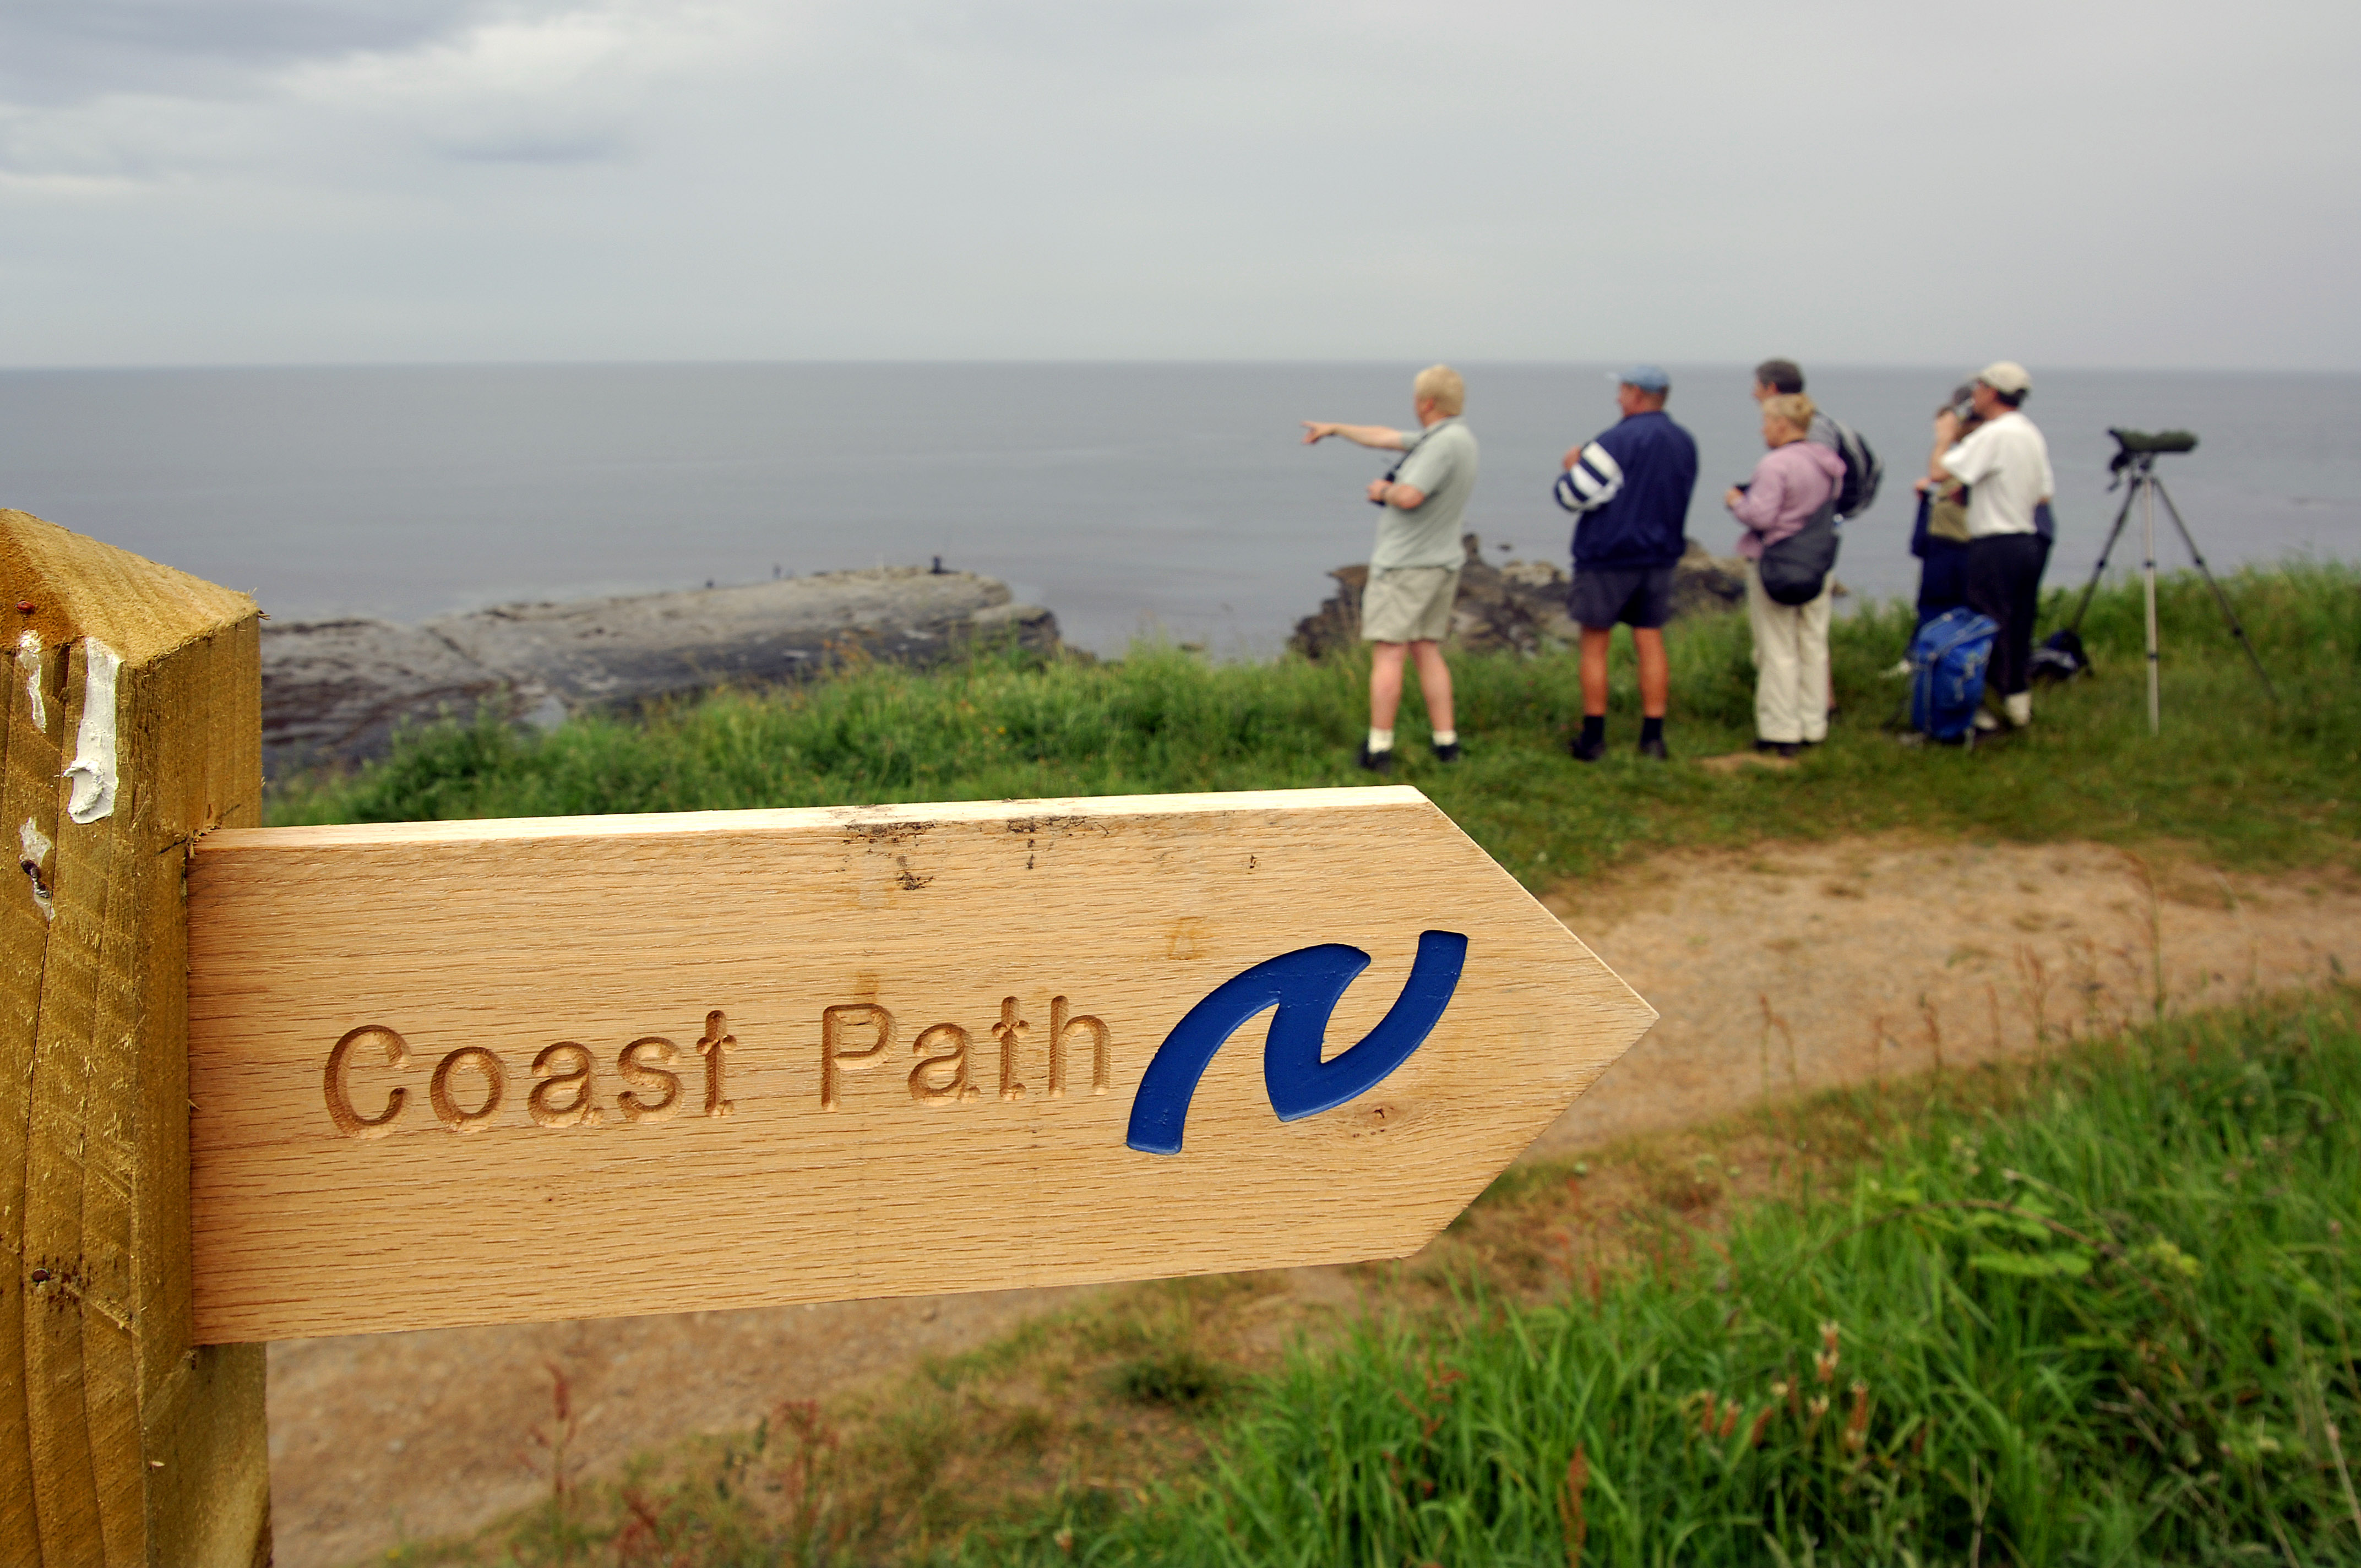 Guided walks to celebrate ten years of coastal path